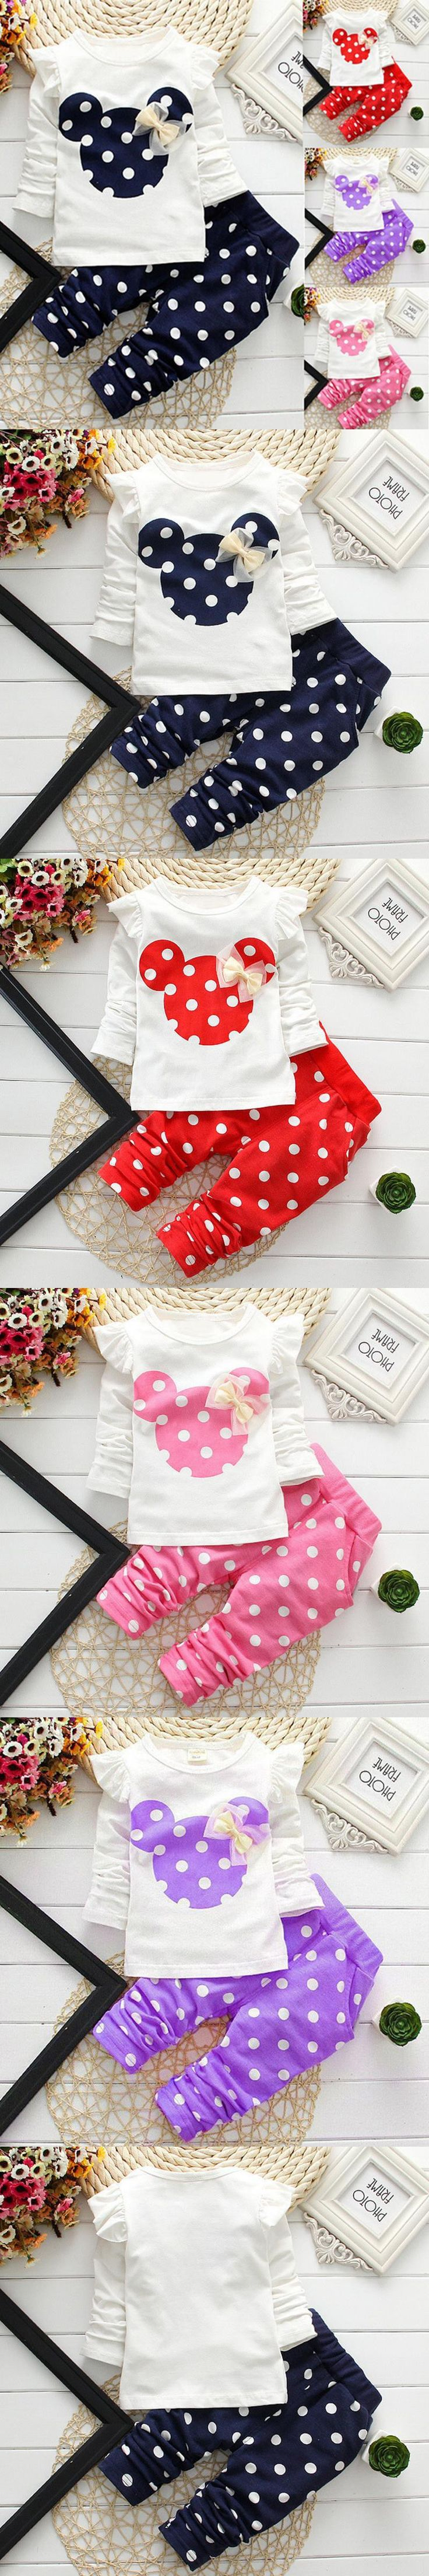 Christmas 2015 winter style kids clothes Newborn baby clothing sets cotton Minnie casual suits 2pcs baby girl clothes baby set